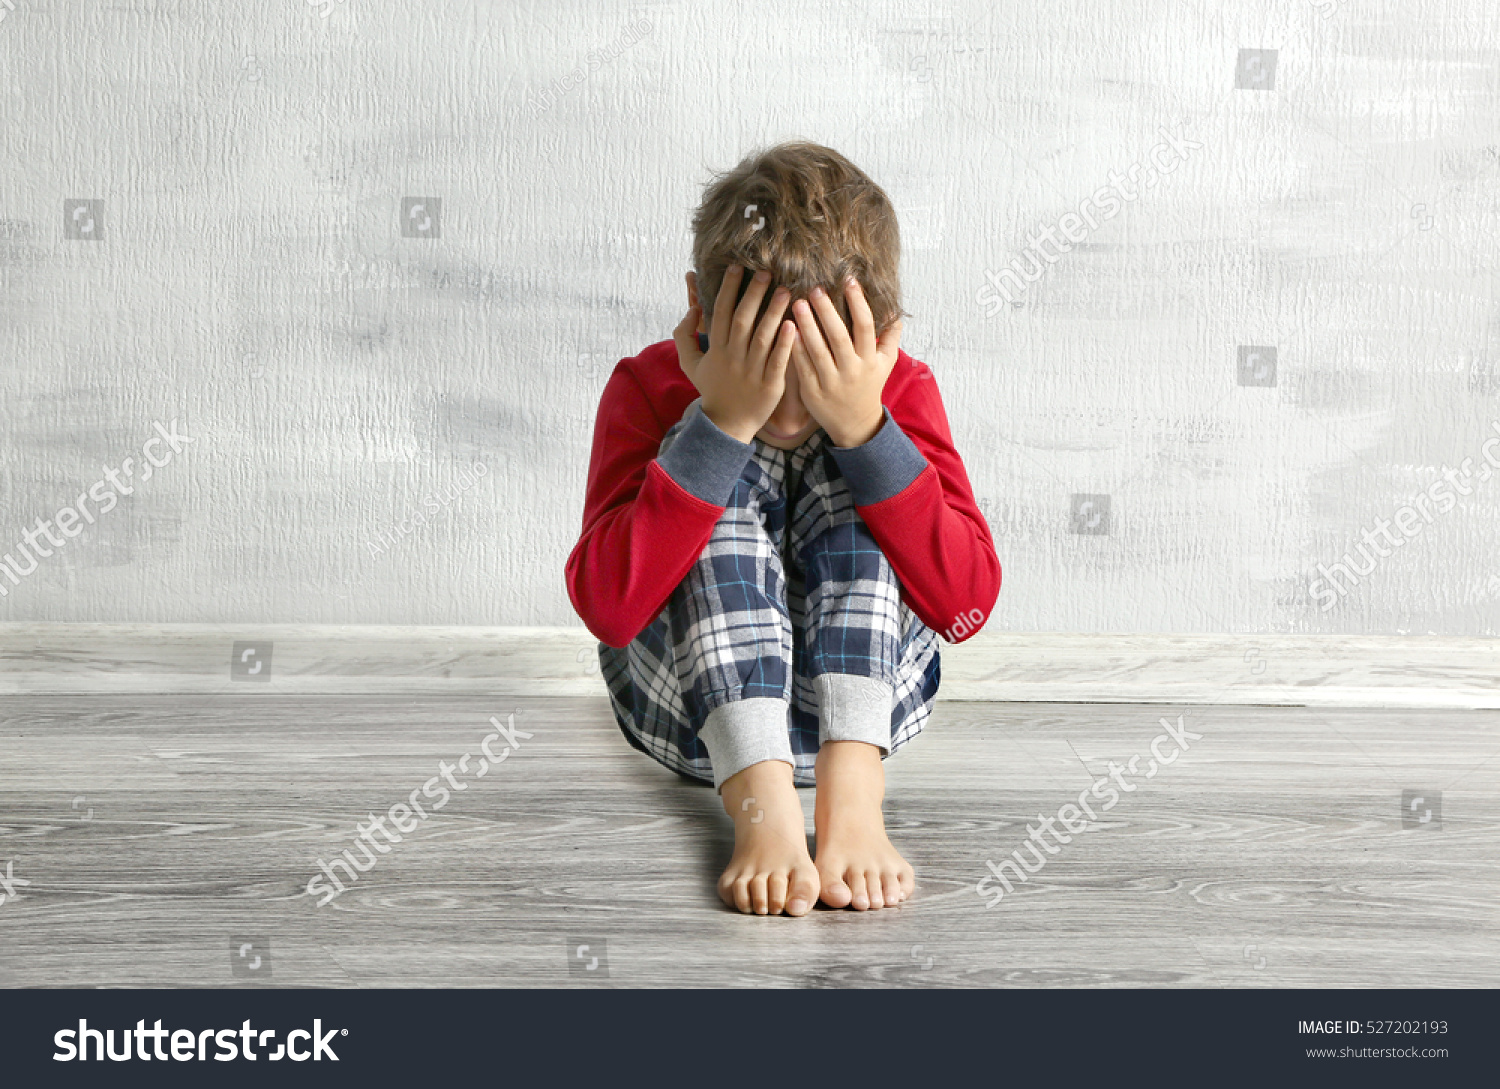 A Commentary on Little Boy Crying